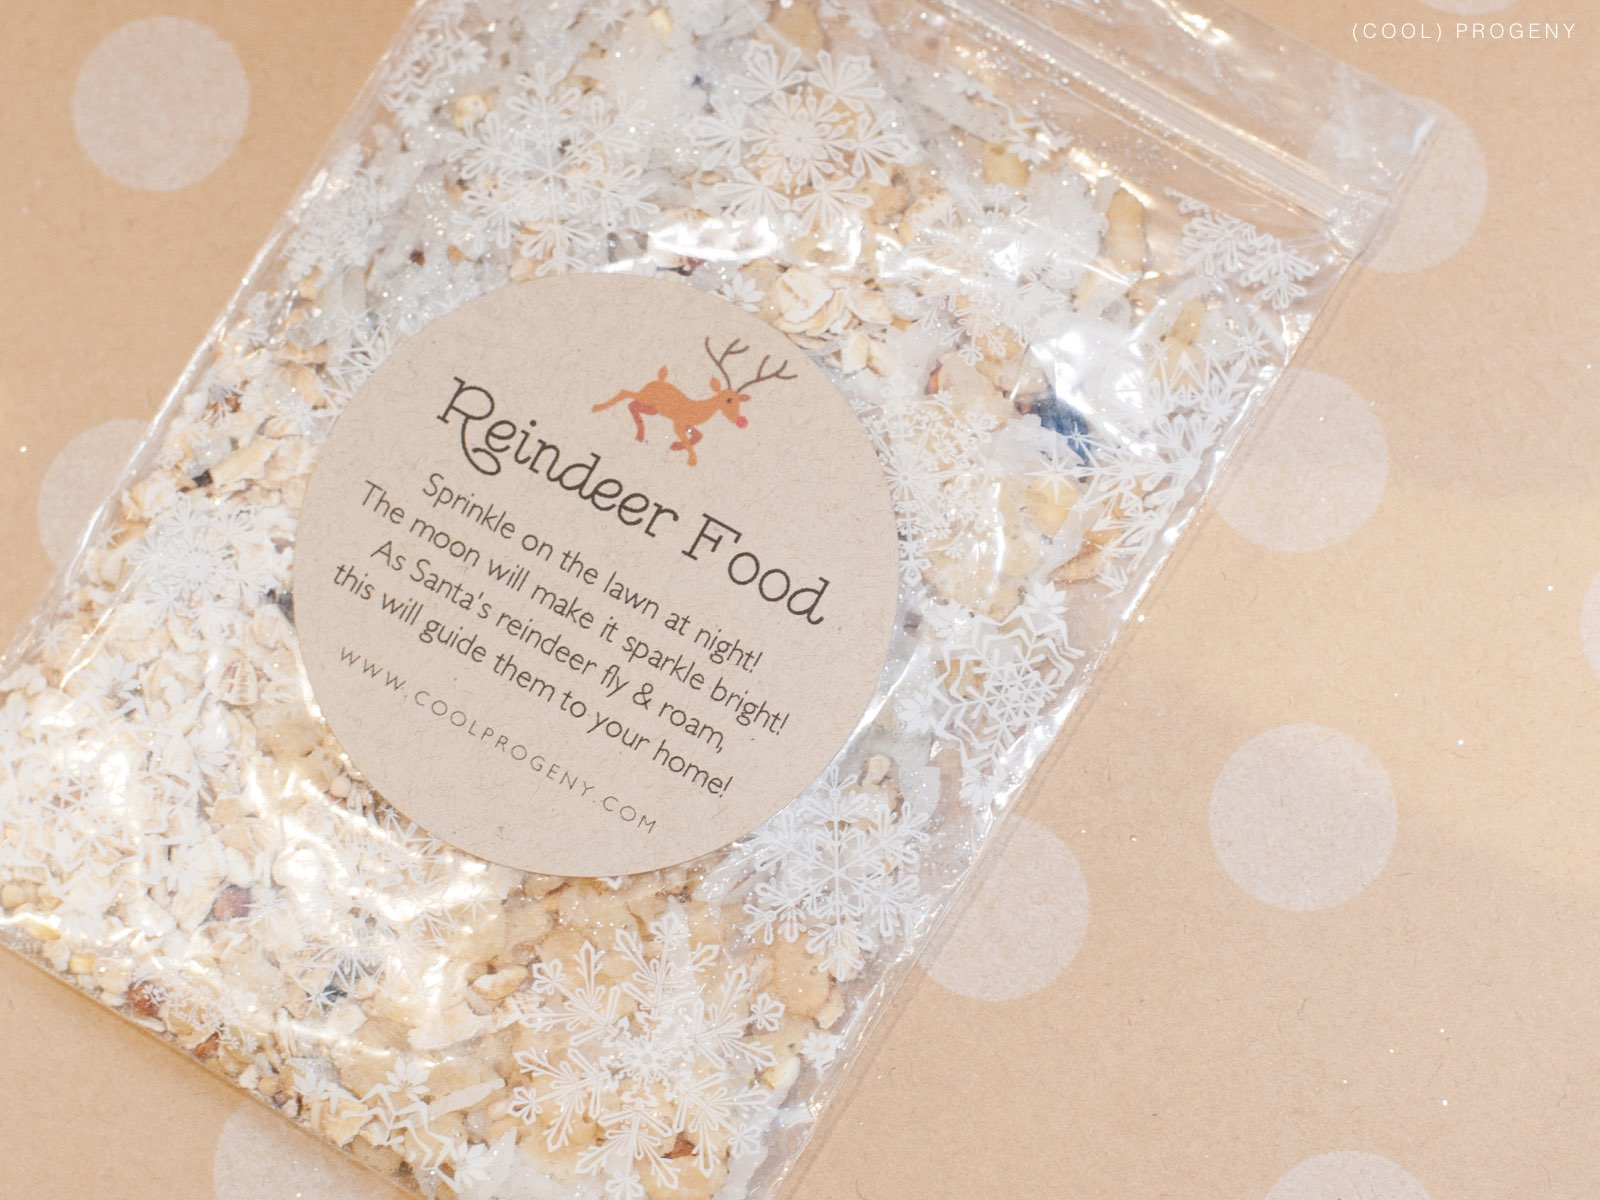 How To Make Reindeer Food - (cool) progeny